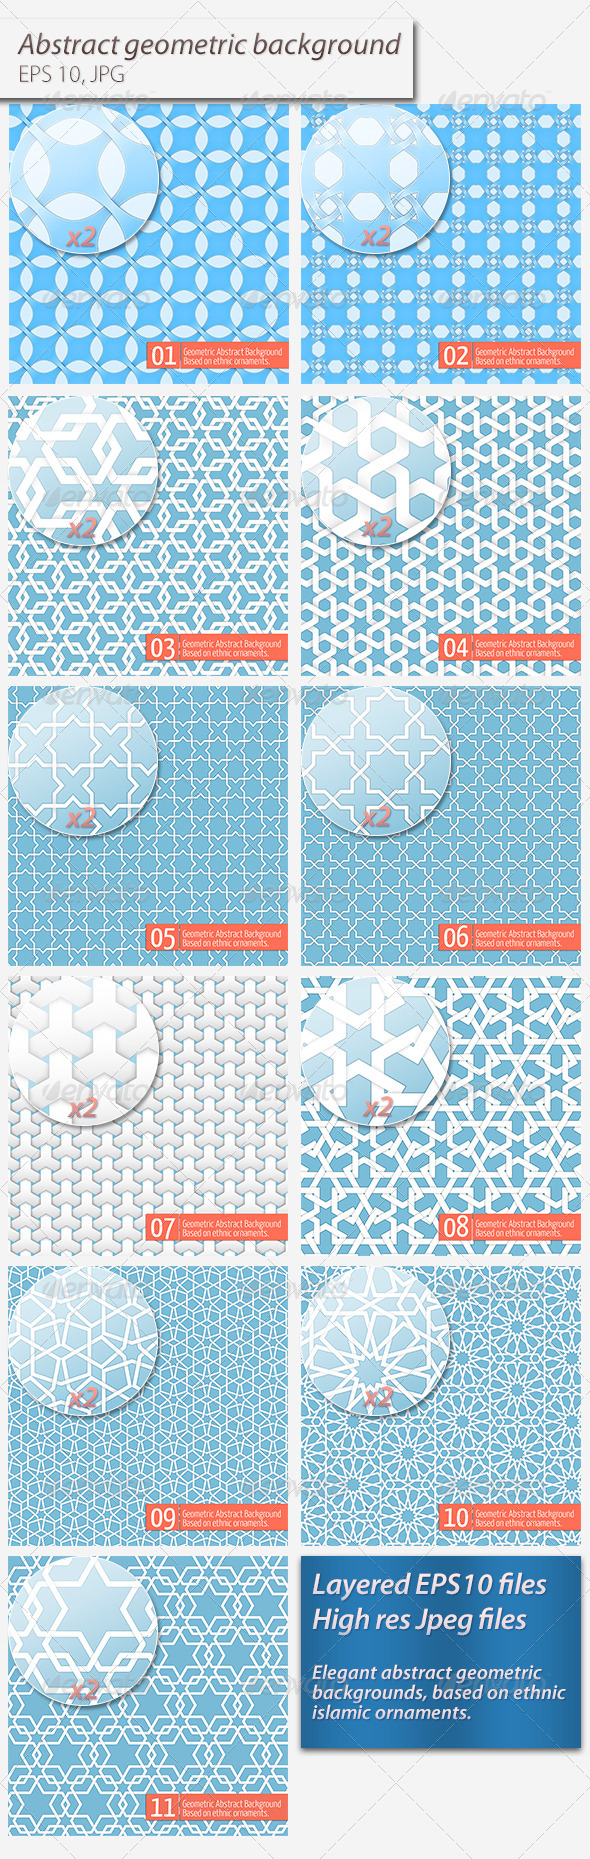 GraphicRiver Vector Abstract Geometric Background 5787729